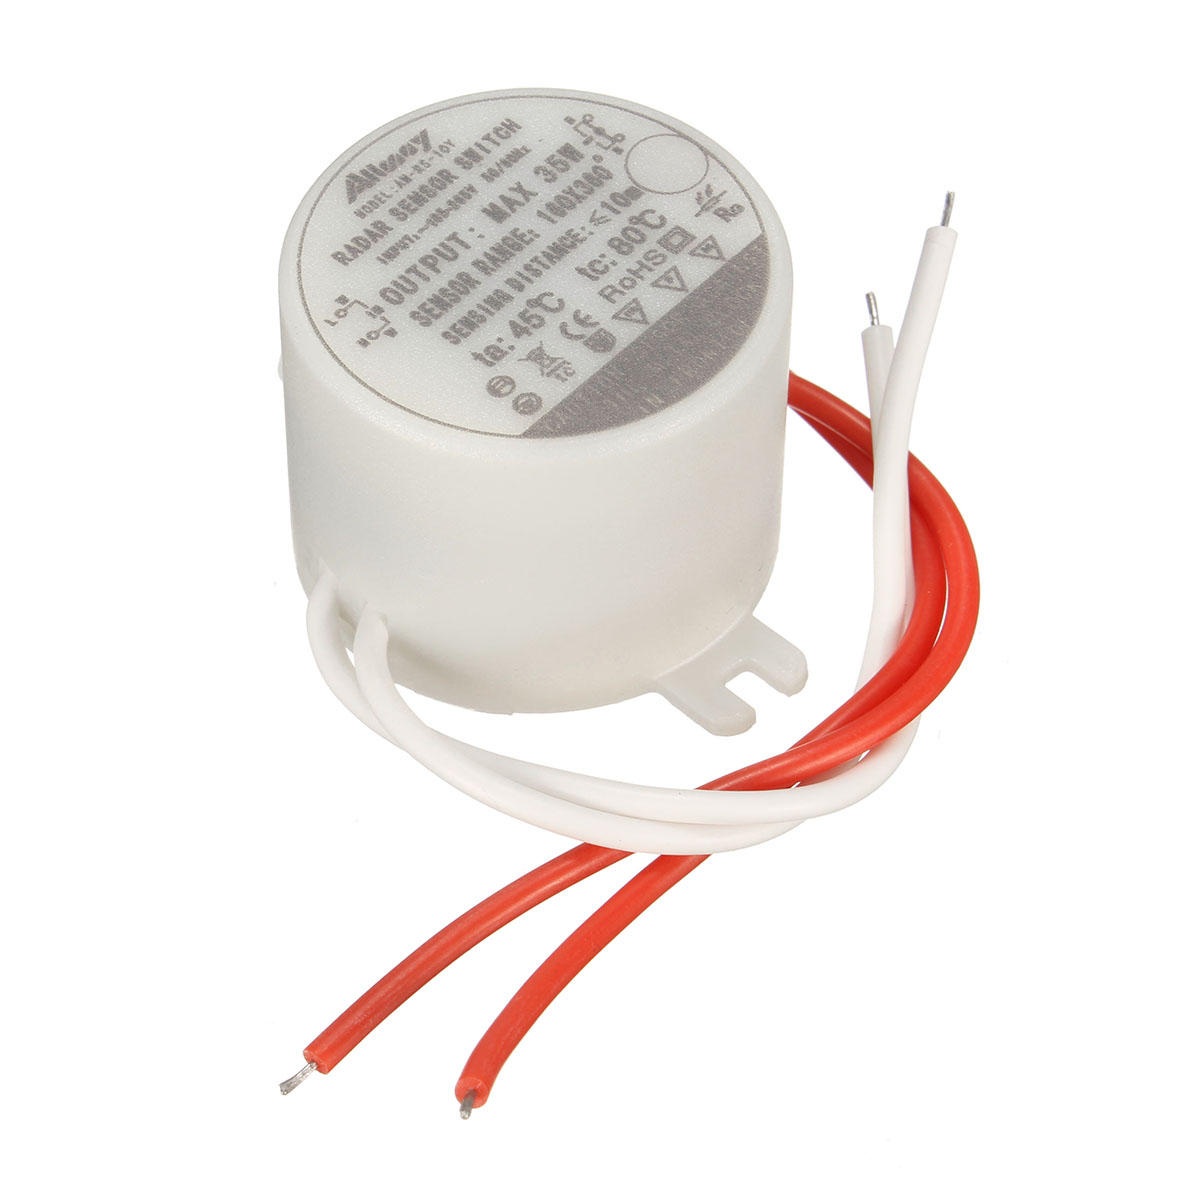 Microwave radar sensor  AM-RS-04(Circle)30 cm